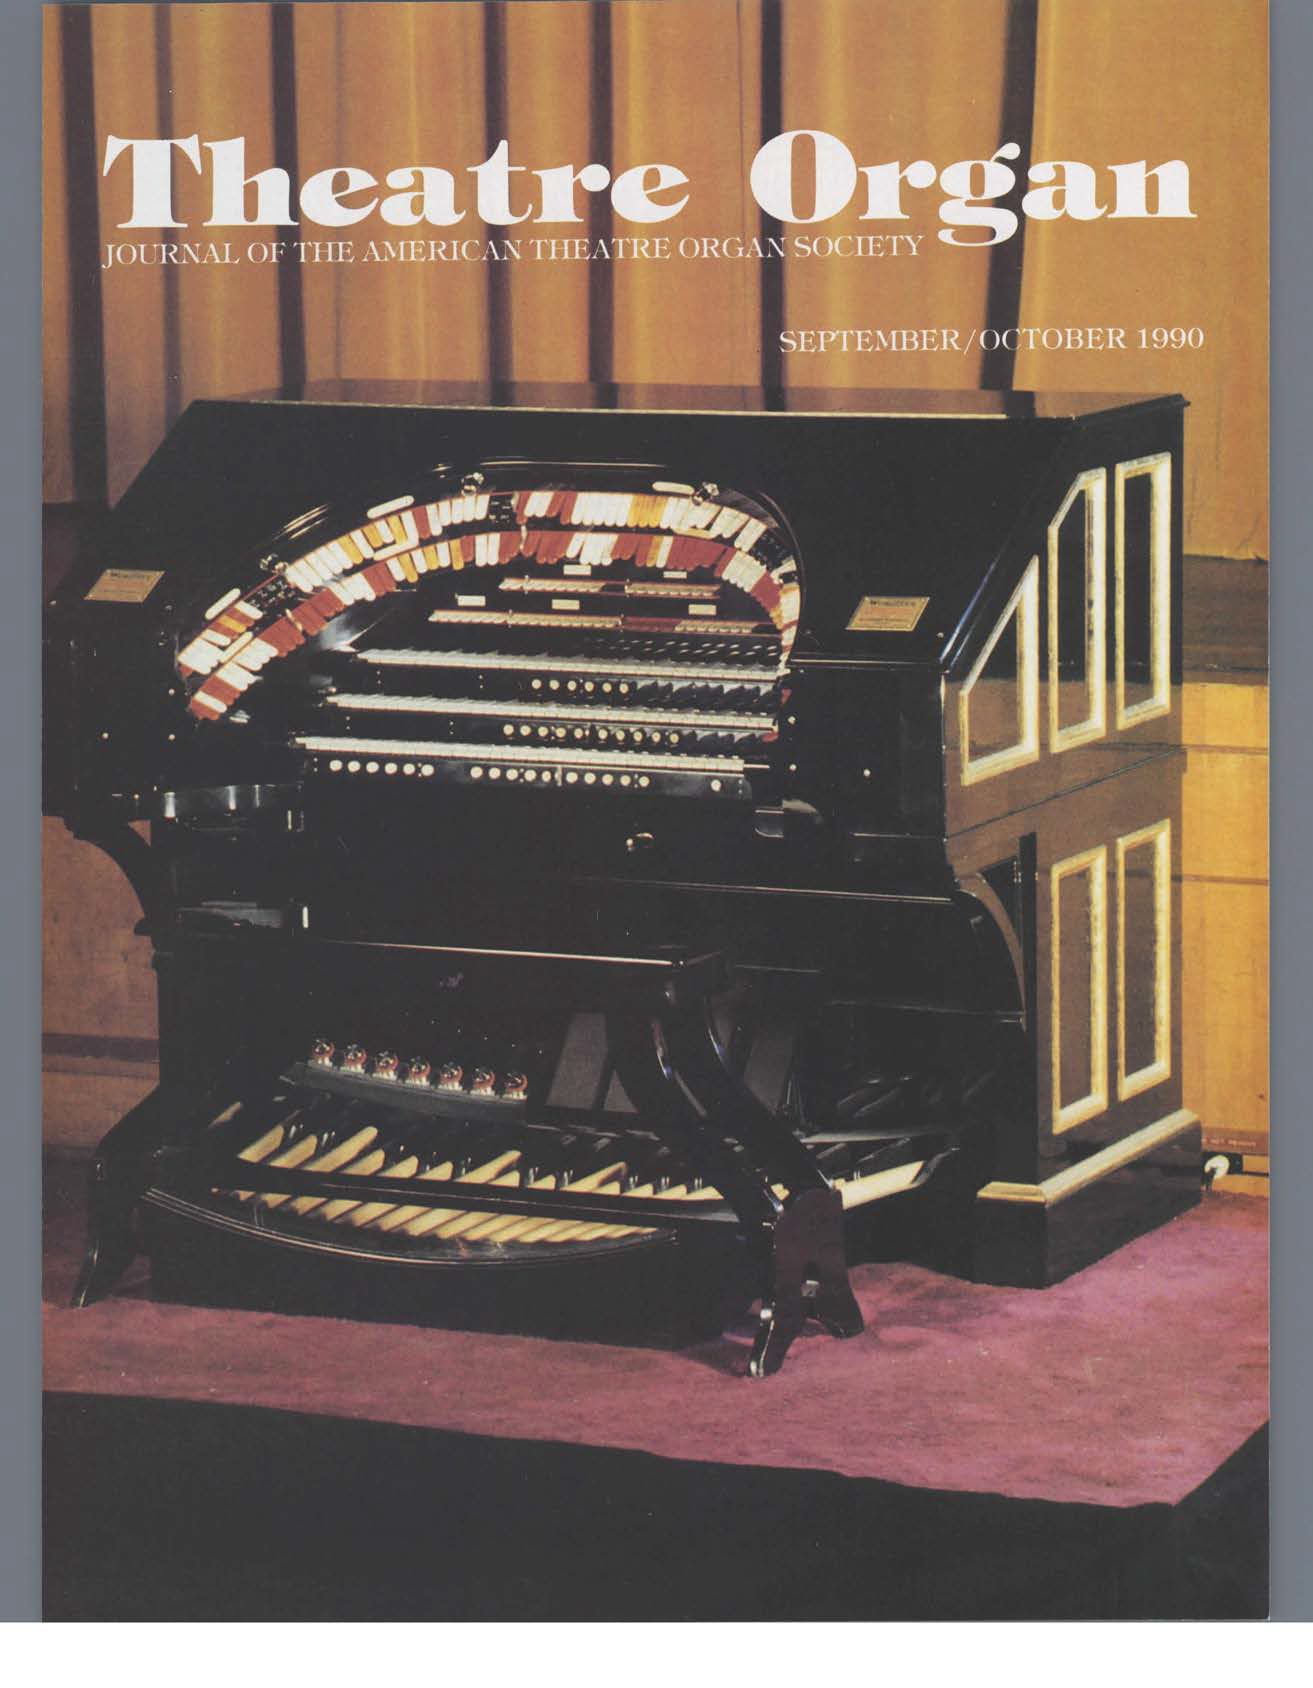 Theatre Organ, September - October 1990, Volume 32, Number 5